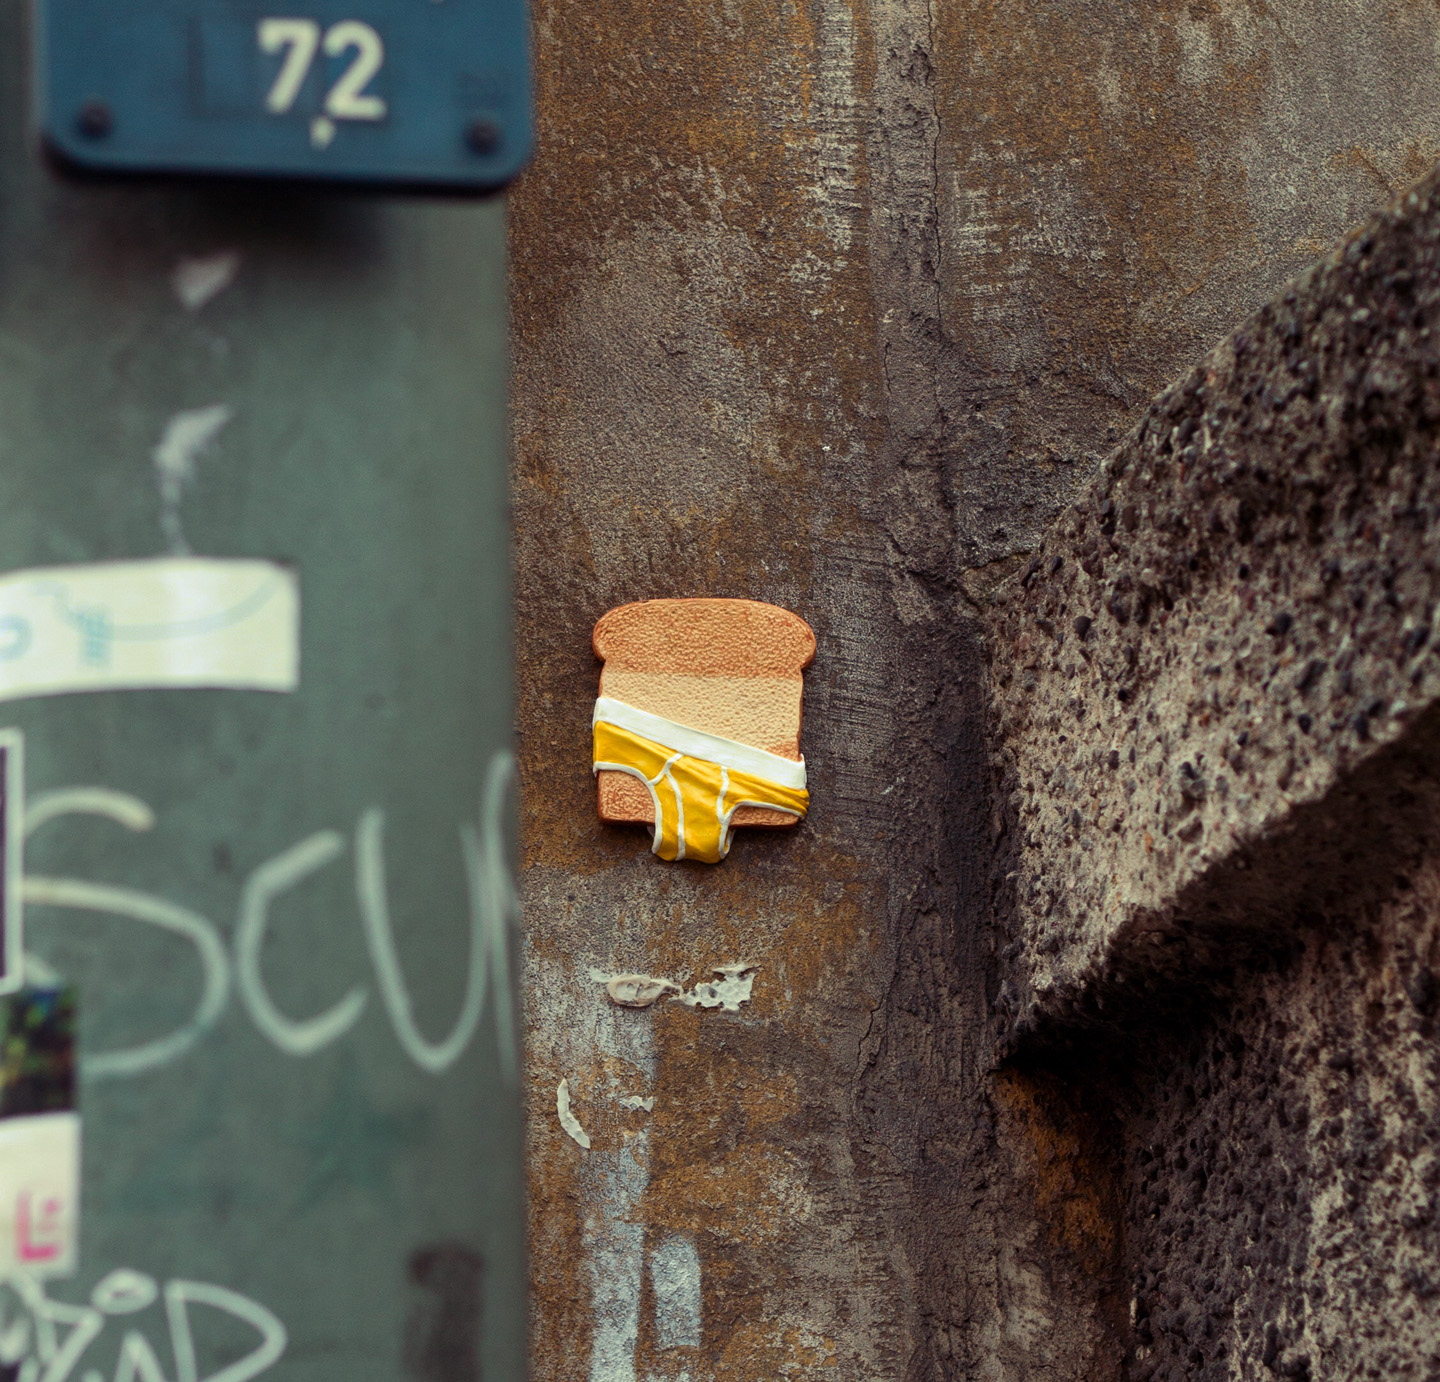 mixed_media_illustration_andre_levy_zhion_toast_croque_copain_street_art_urban_sculpture_3.jpg